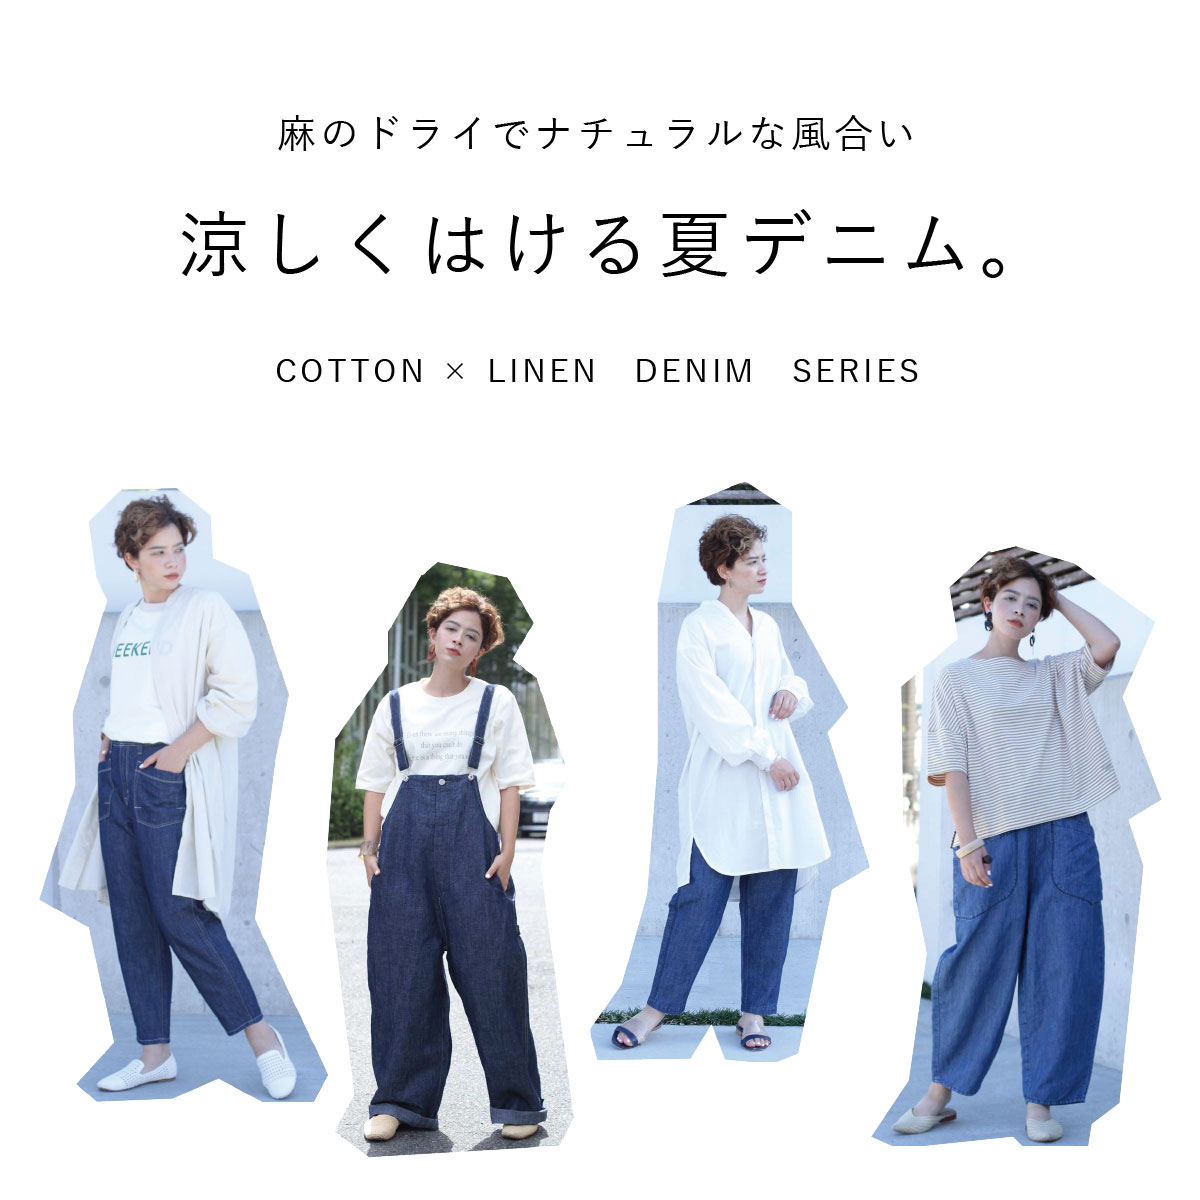 【PRE SALE】Cafetty エッグクロップド CF0406